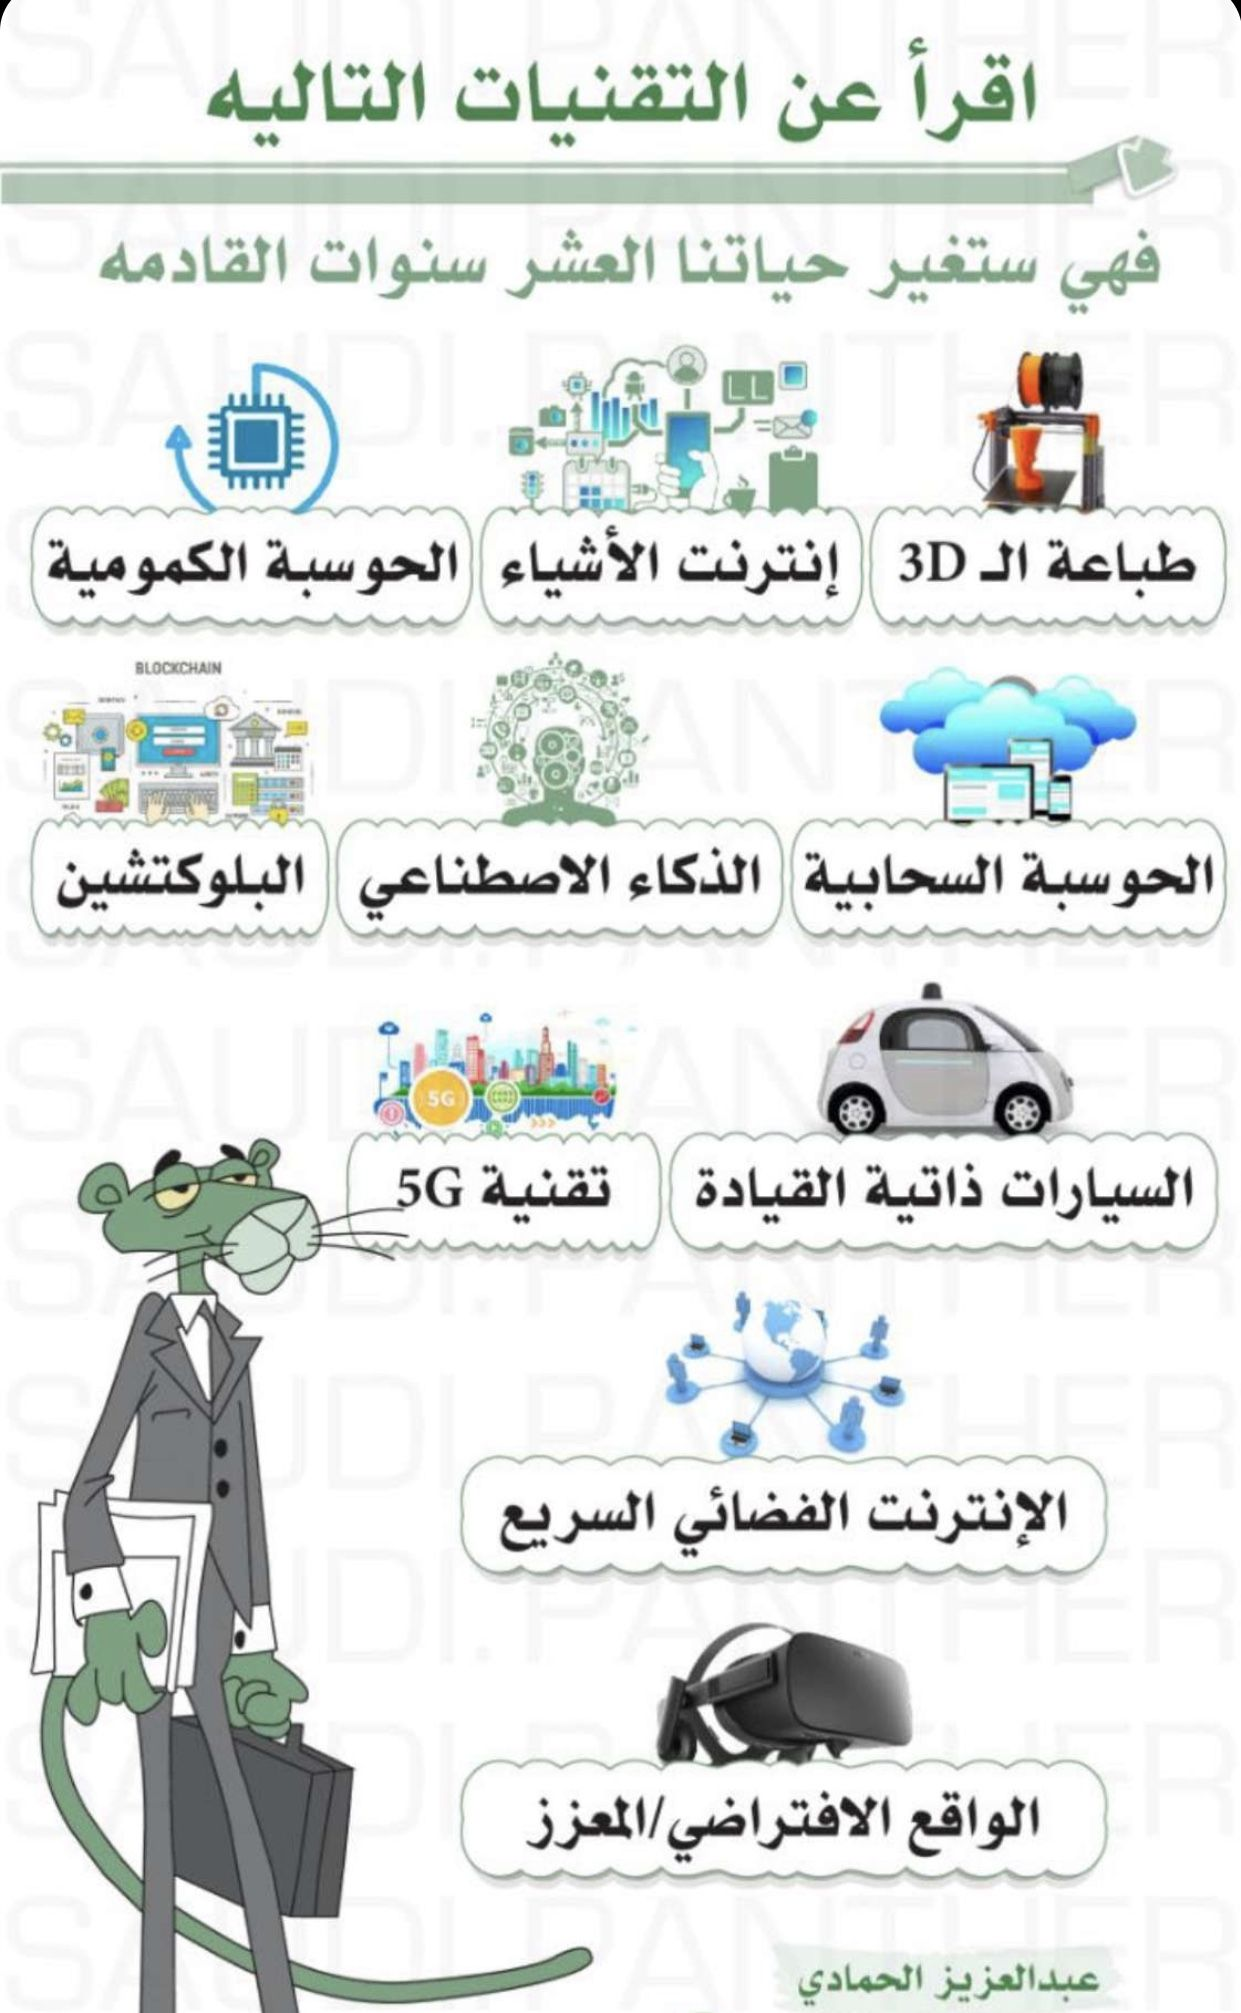 Pin By Israa Abdallah On Informations معلومات Learning Websites Computer Learning Learning Apps